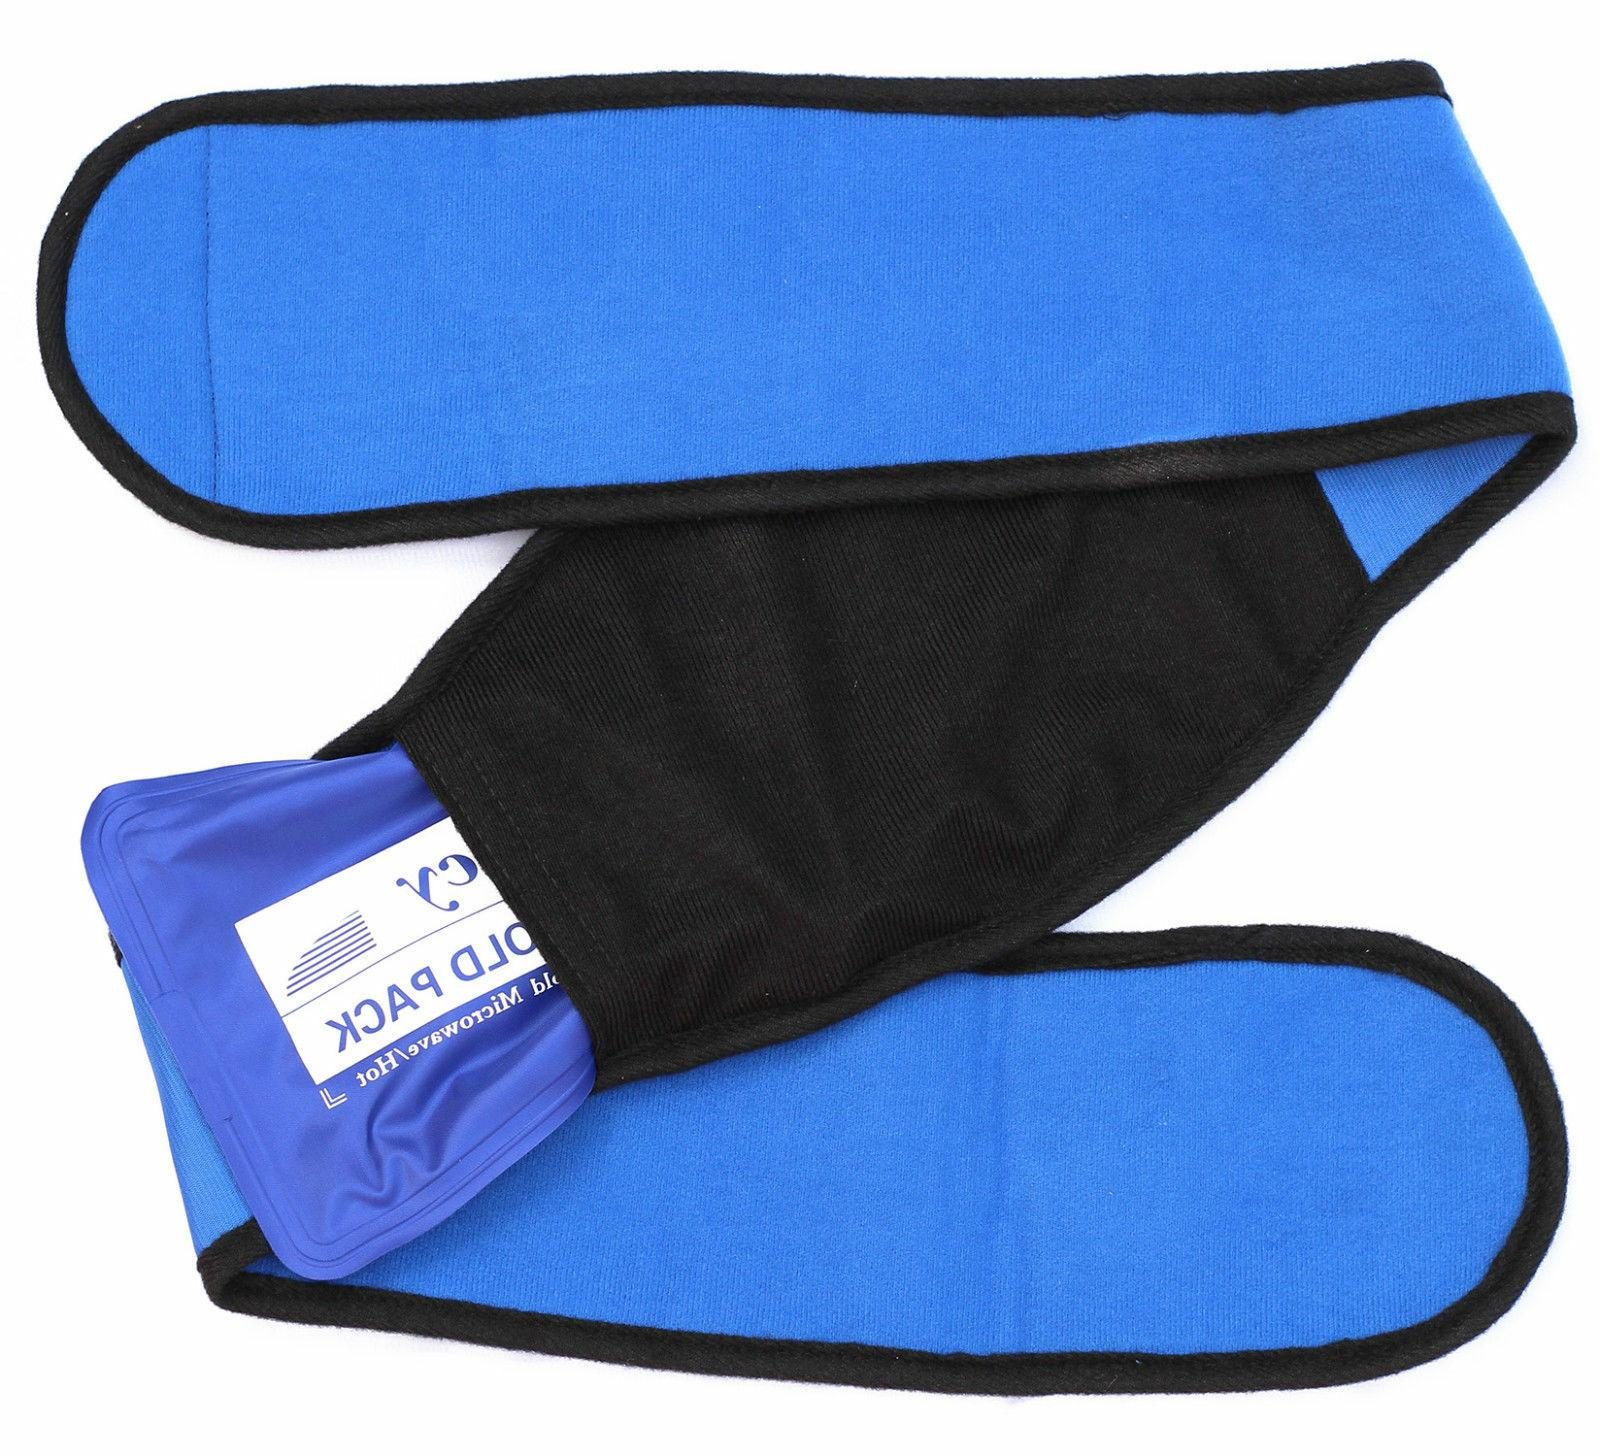 Reusable Ice Pack Gel Pack for Hot & Cold Therapy Heat Pad C